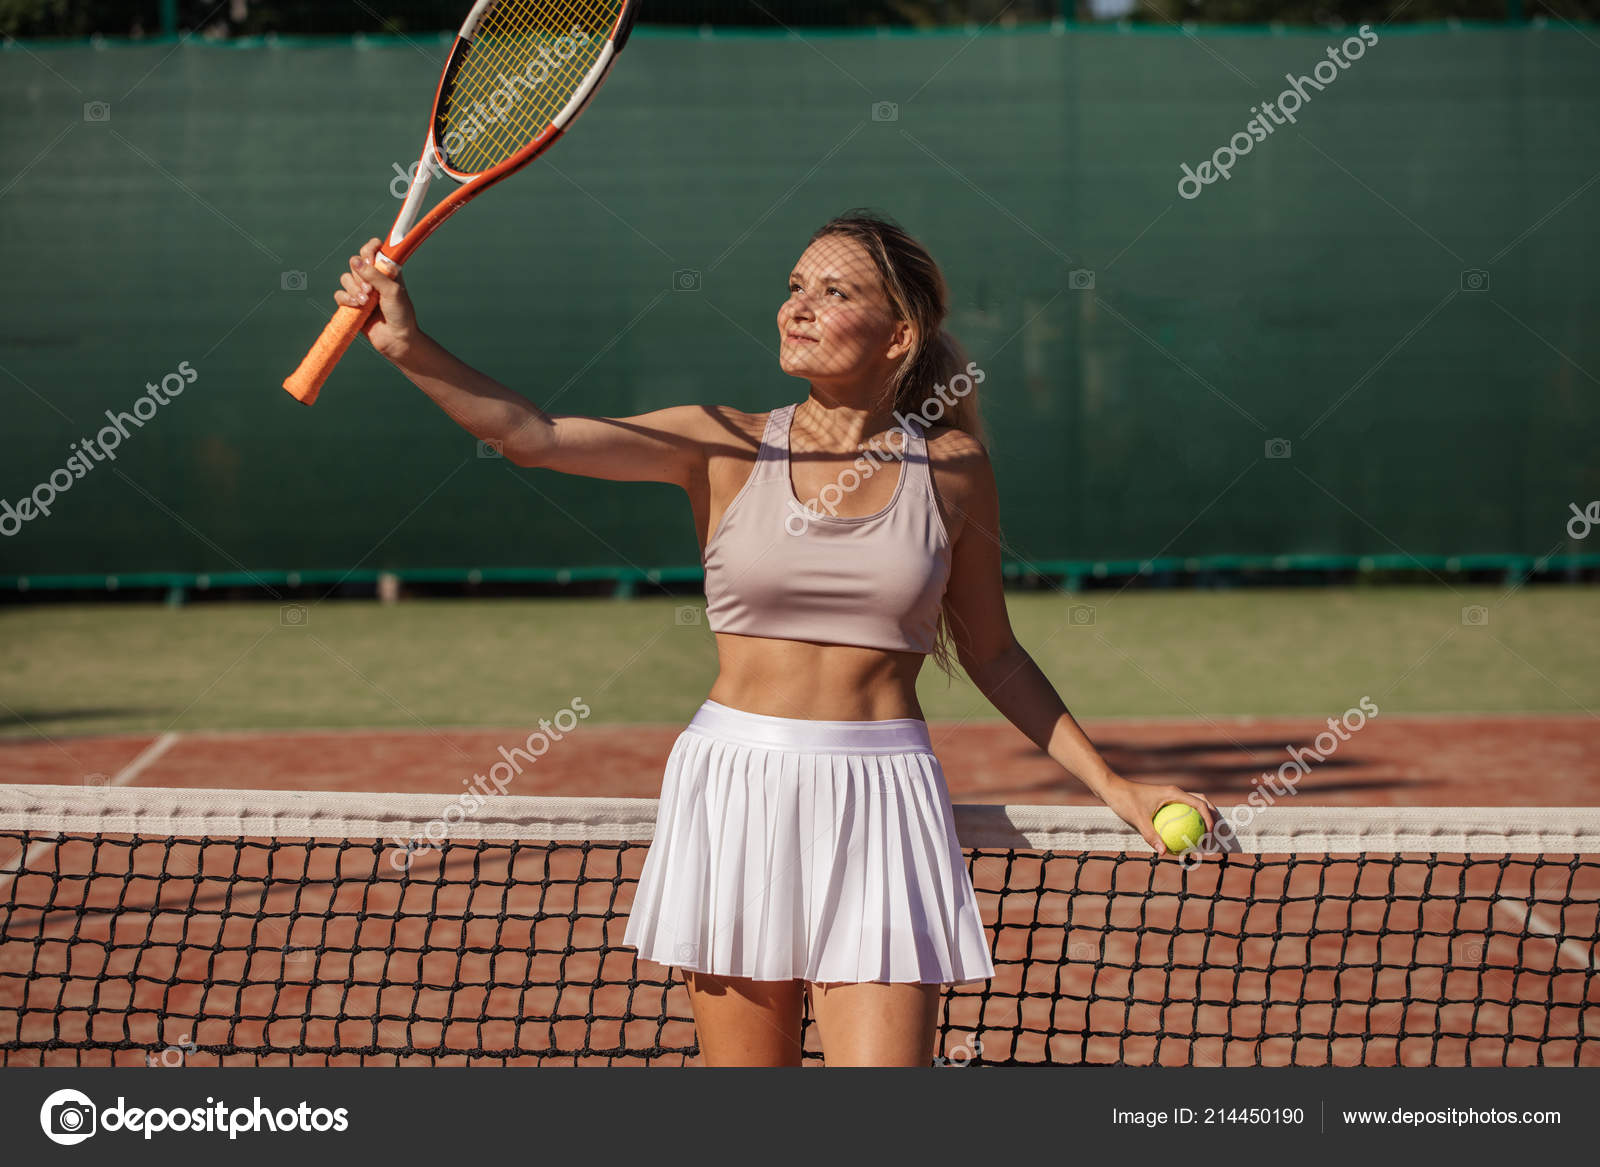 Professional Sportswoman Tennis Outfit Standing Racket Ready Stance Receive Ball Stock Photo C Ufabizphoto 214450190